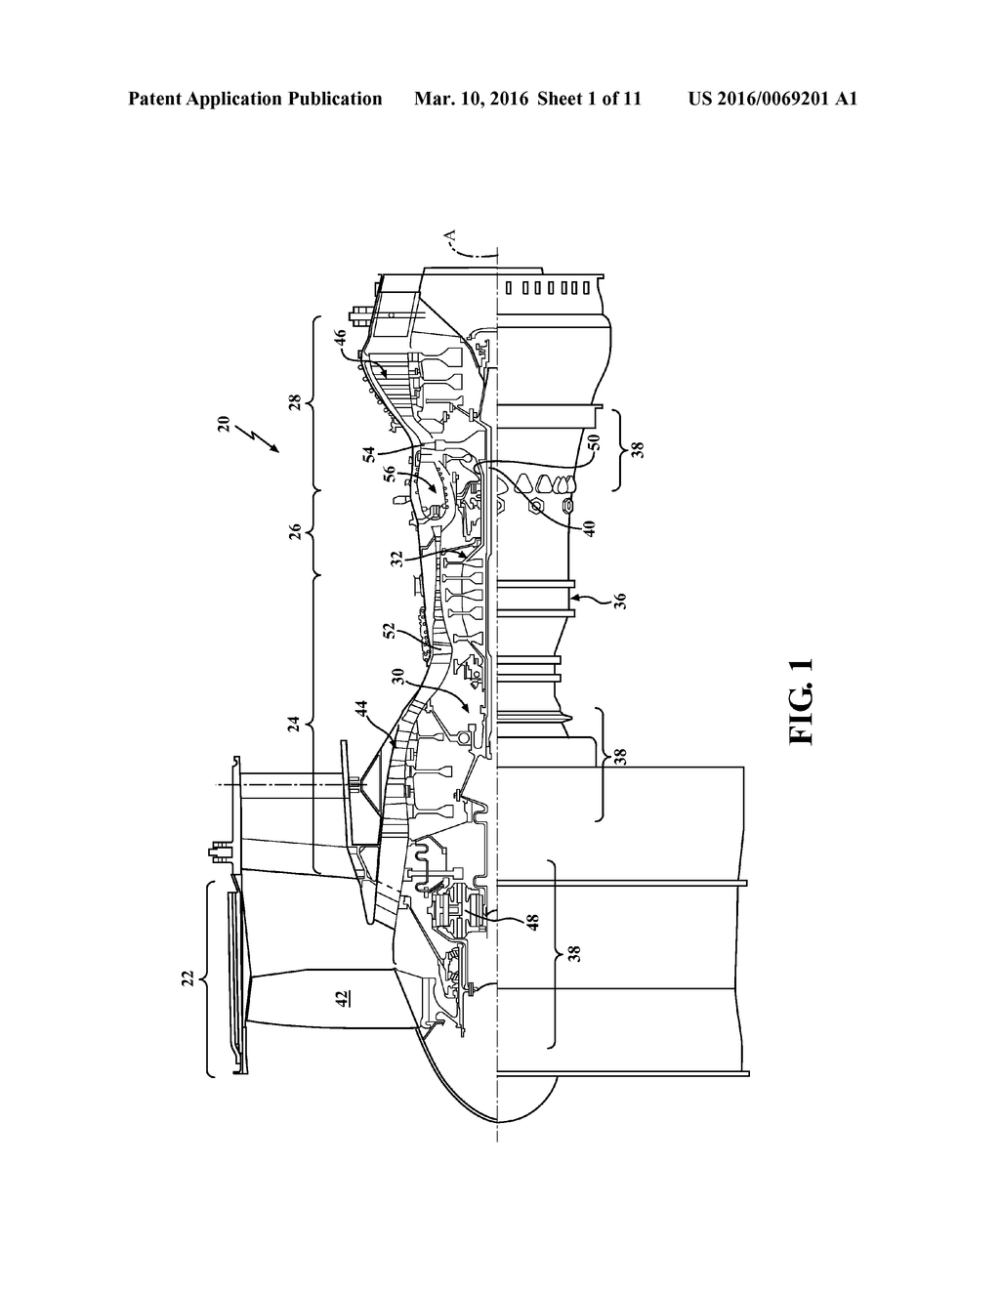 medium resolution of attachment faces for clamped turbine stator of a gas turbine engine diagram schematic